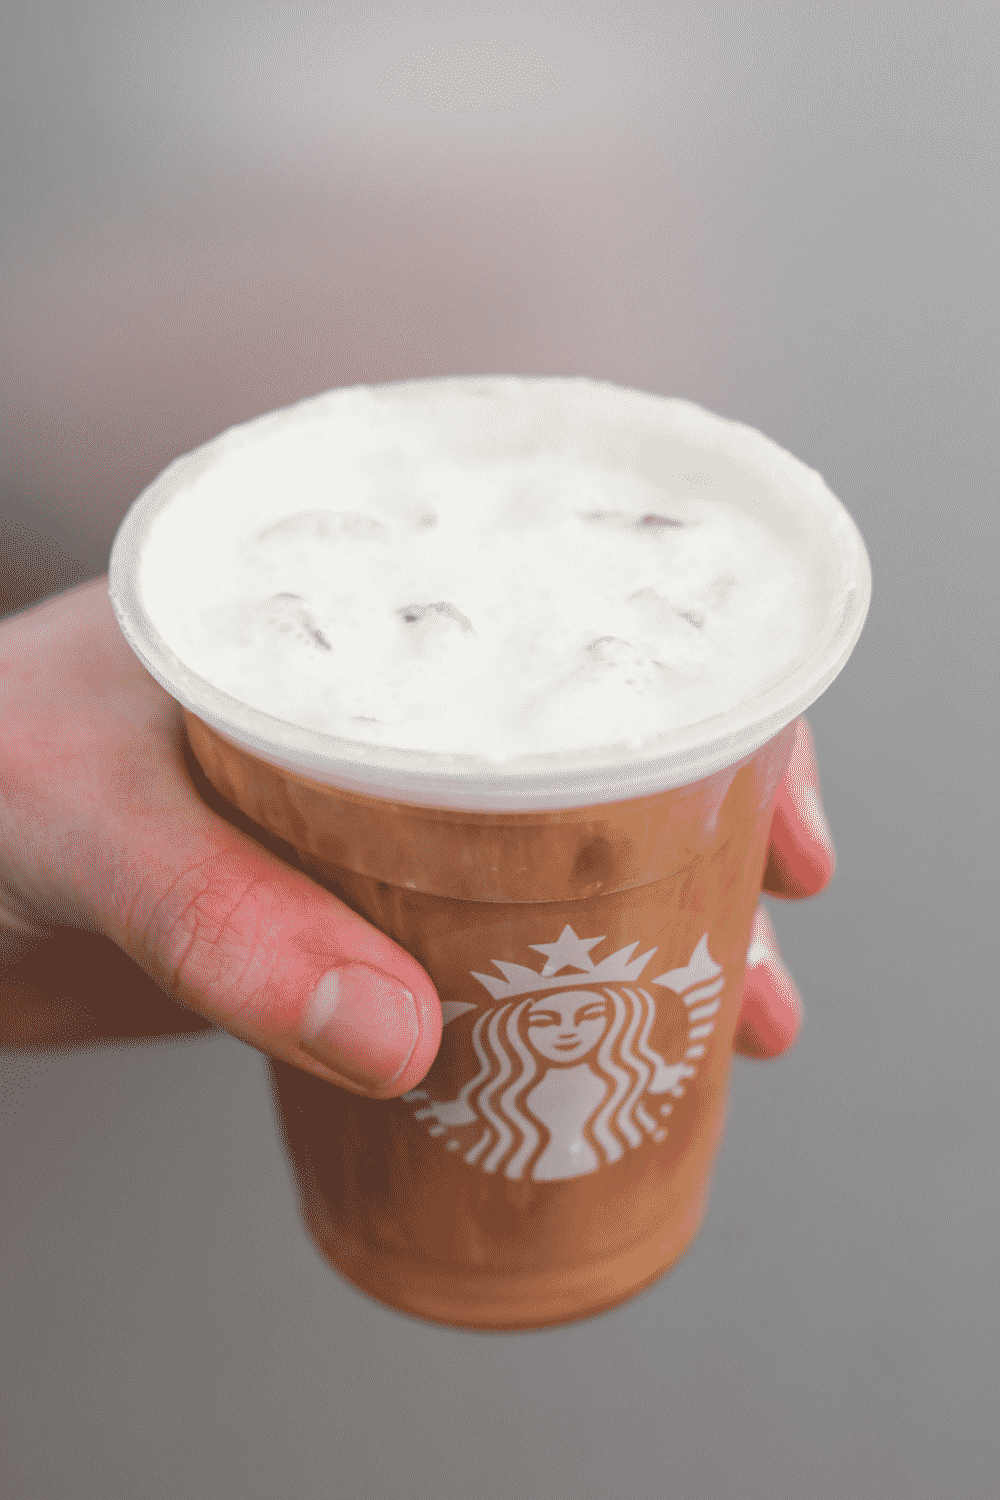 I had holding a cup of Starbucks salted caramel cream cold brew.